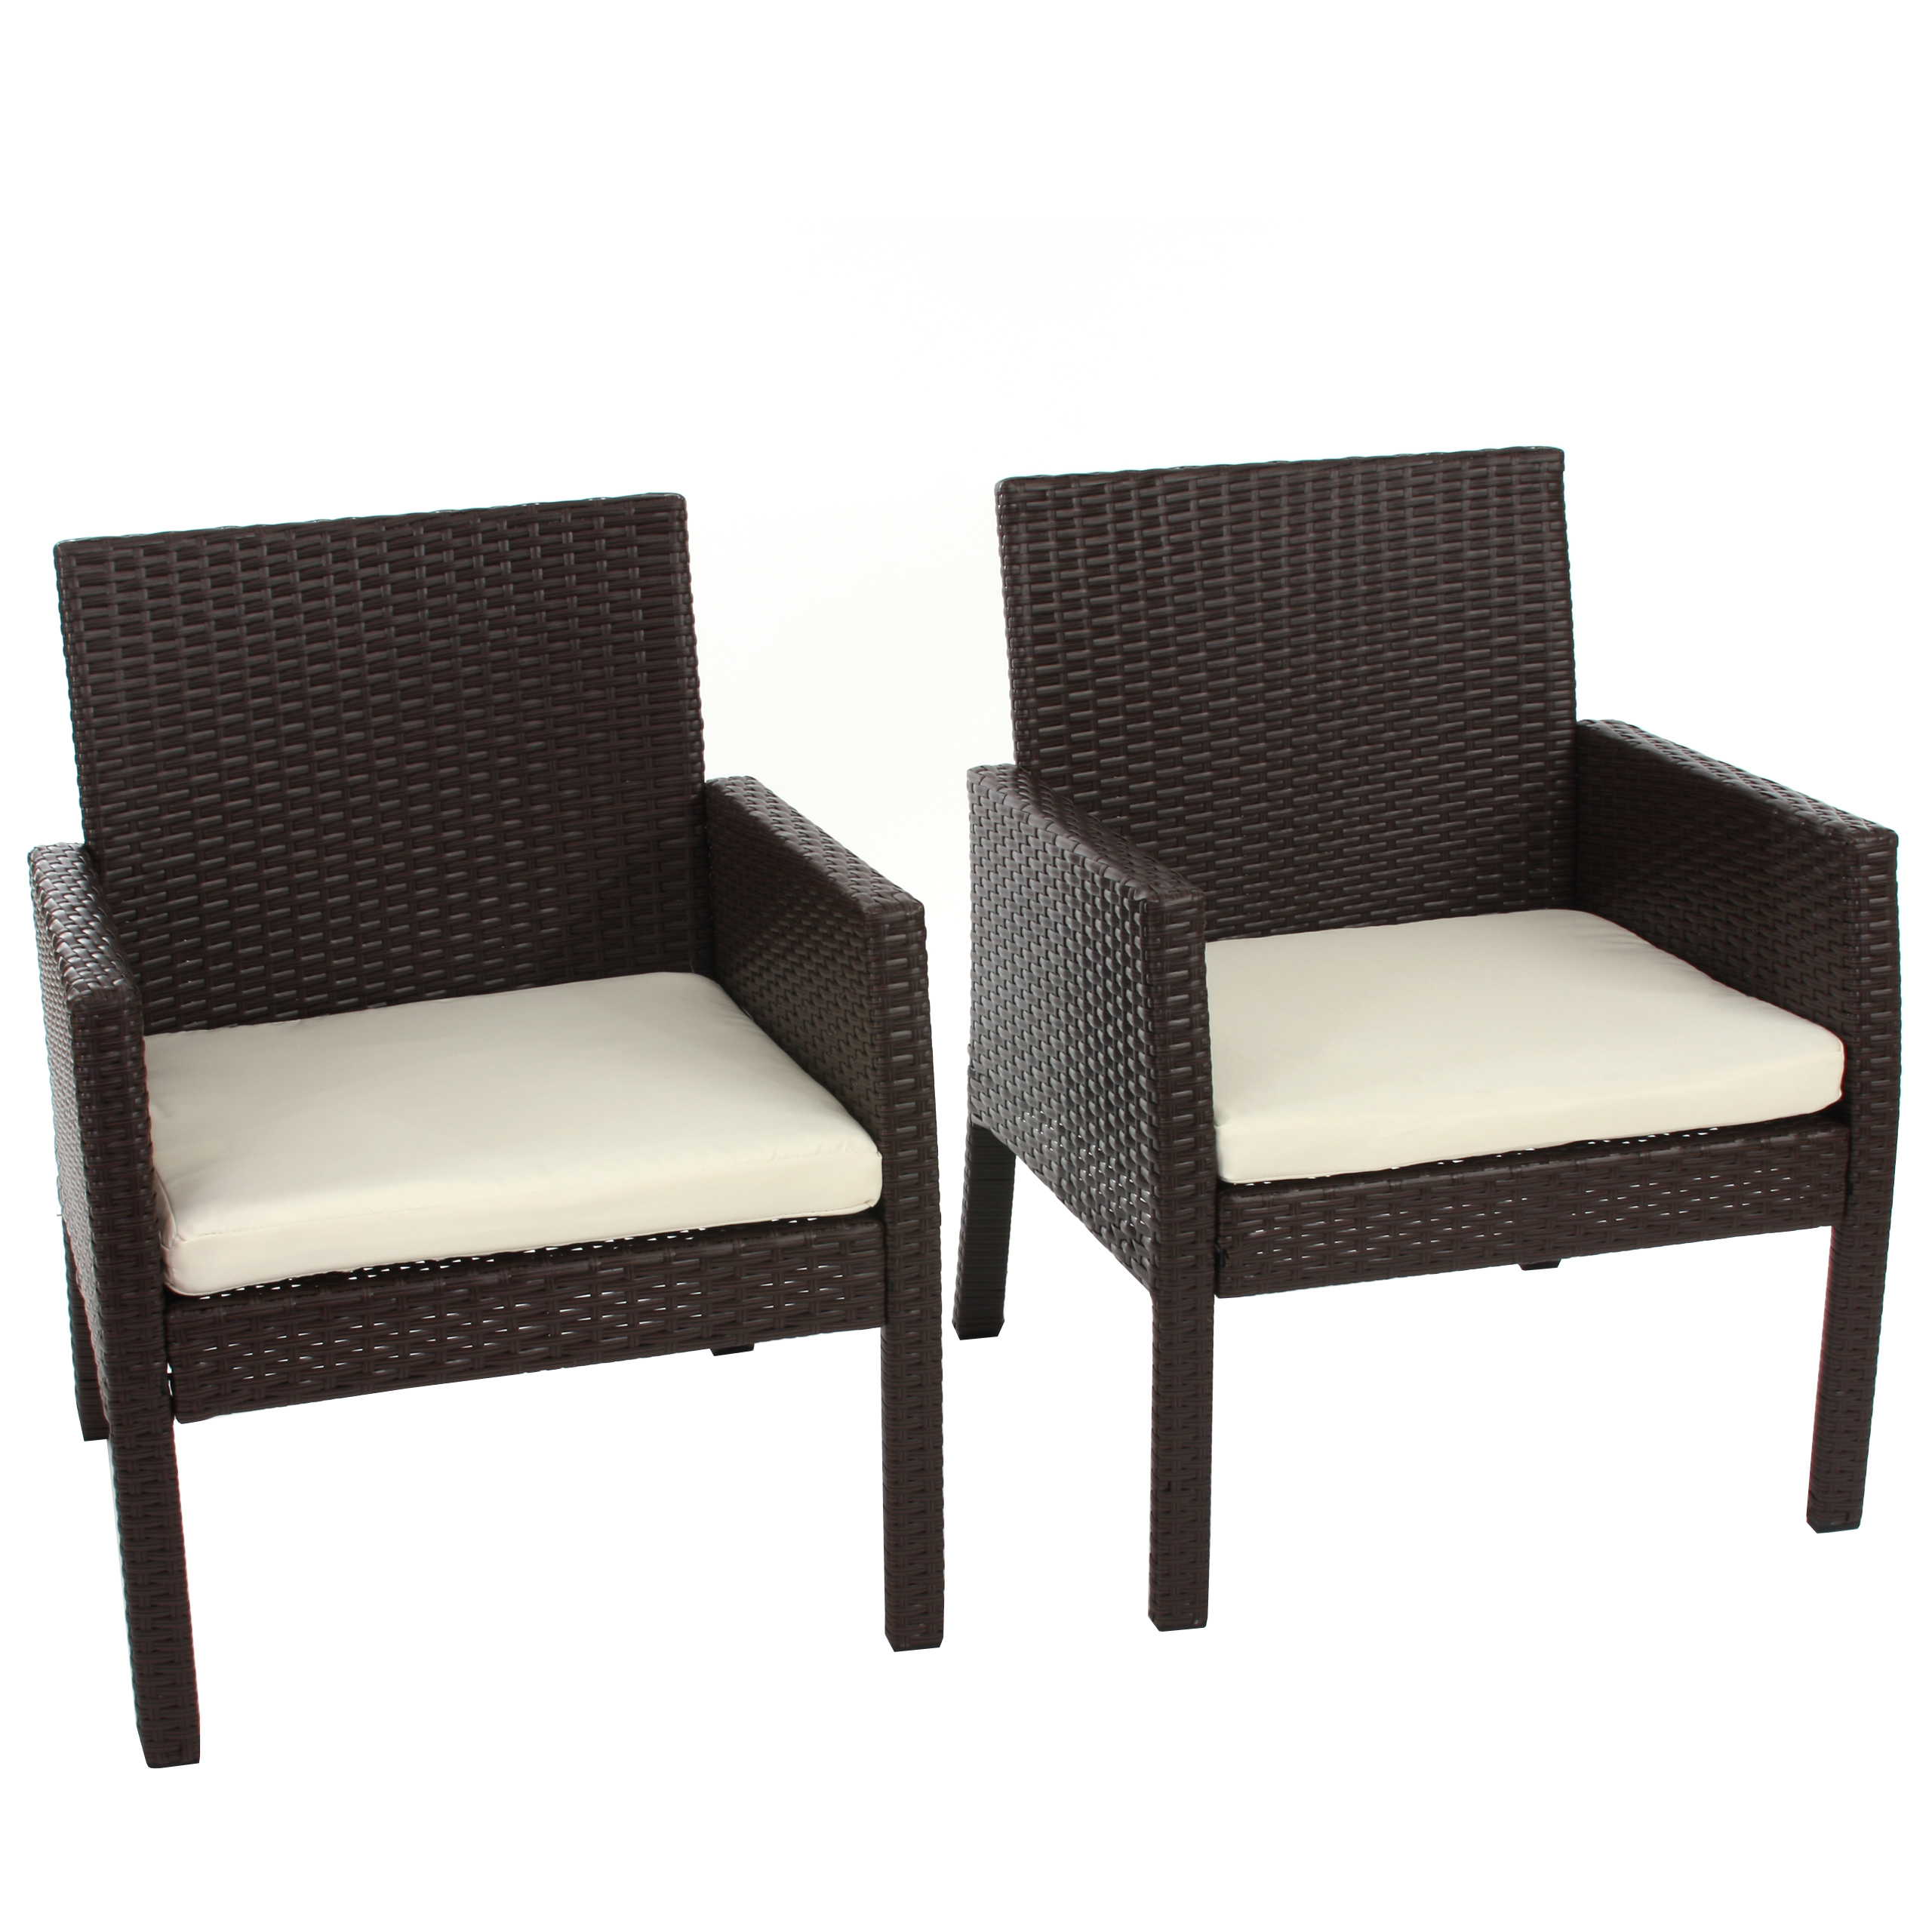 2x poly rattan sessel gartensessel porto inkl sitzkissen braun meliert ebay. Black Bedroom Furniture Sets. Home Design Ideas